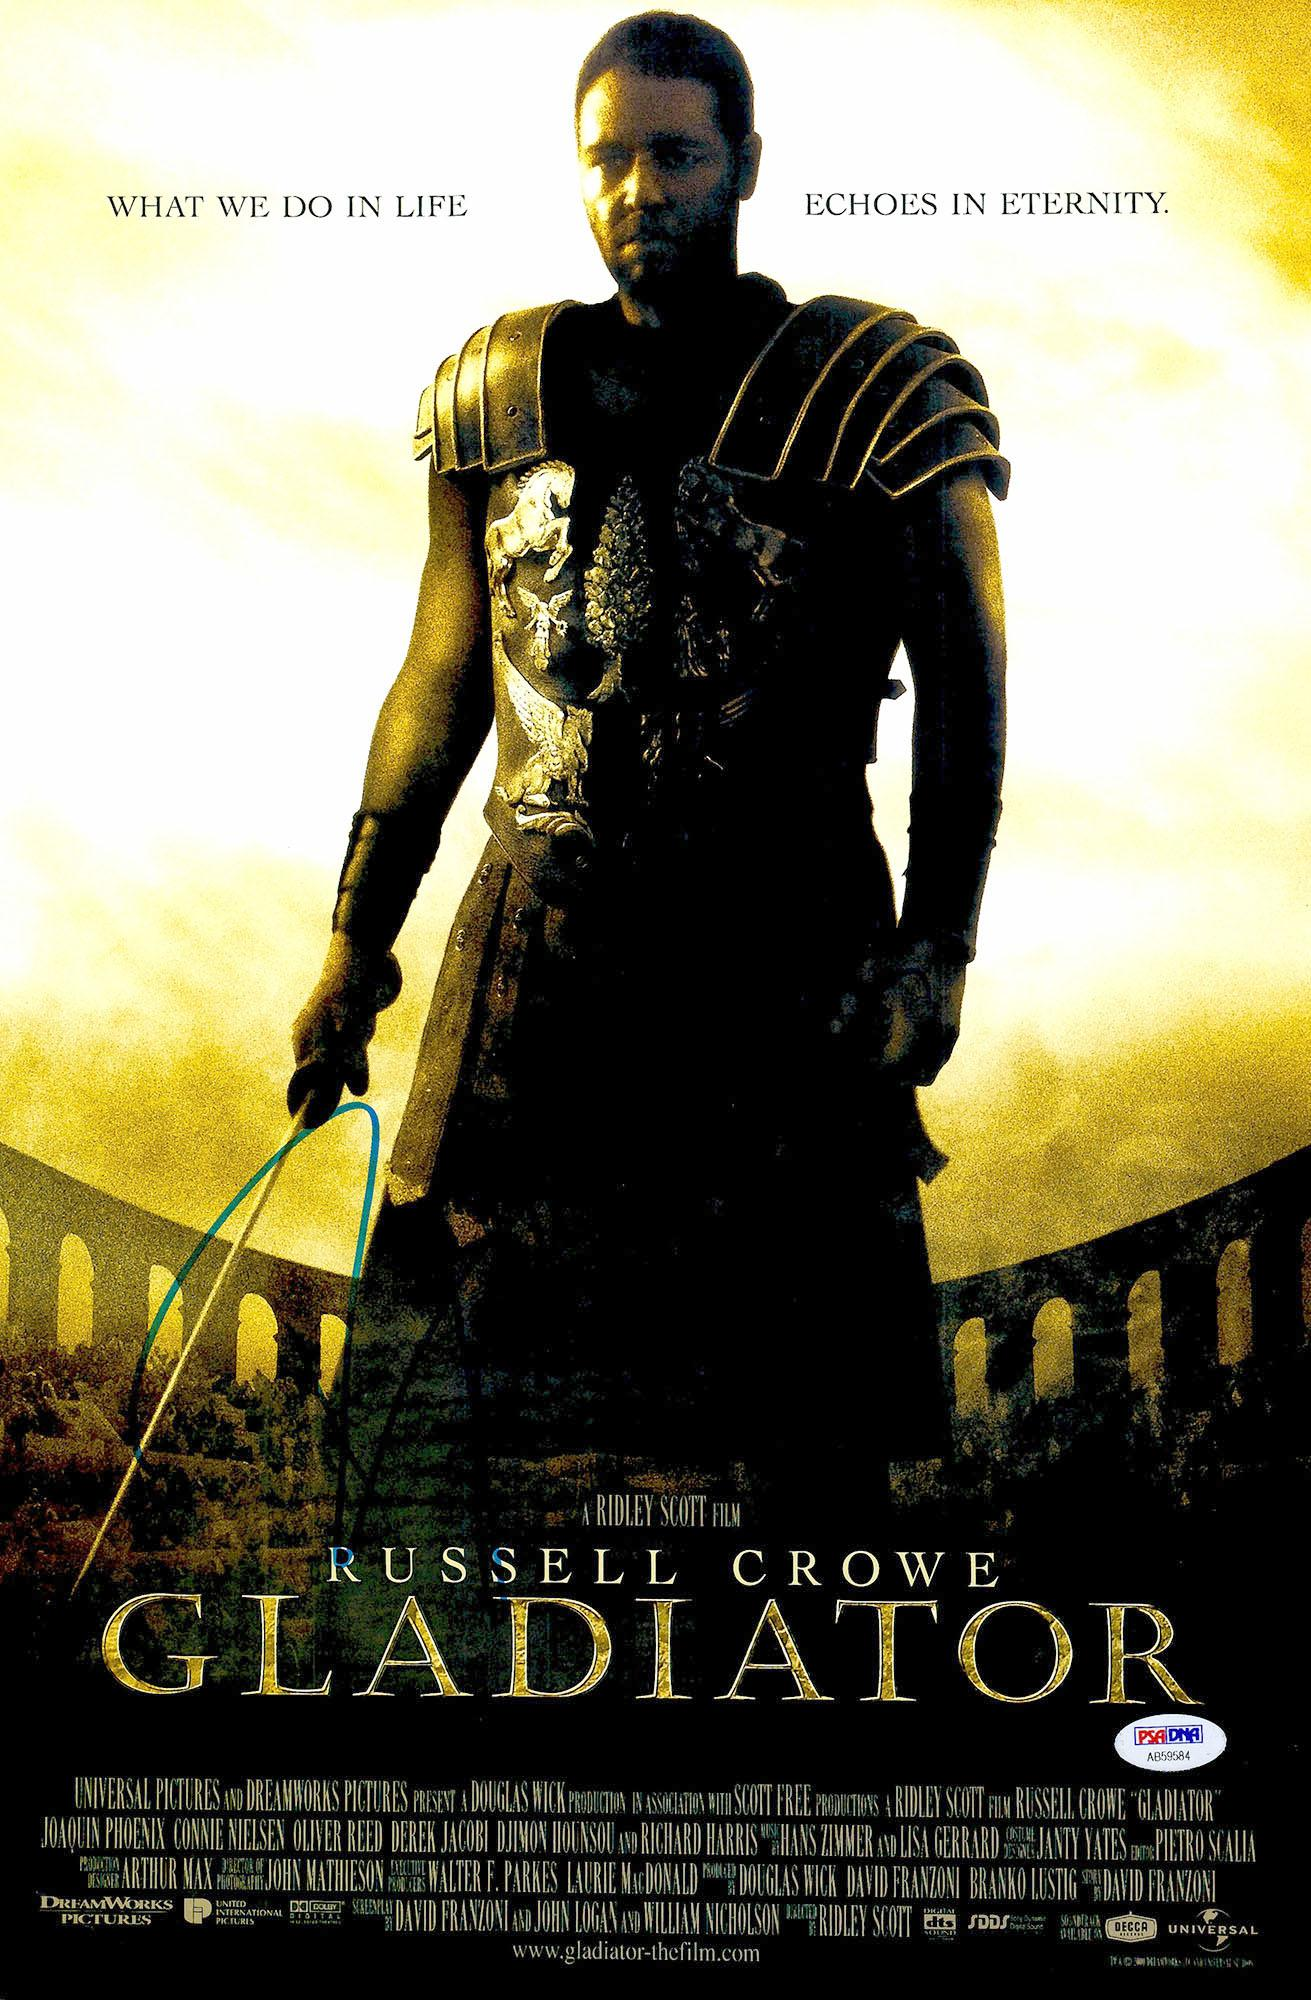 an introduction to the analysis of the movie the gladiator